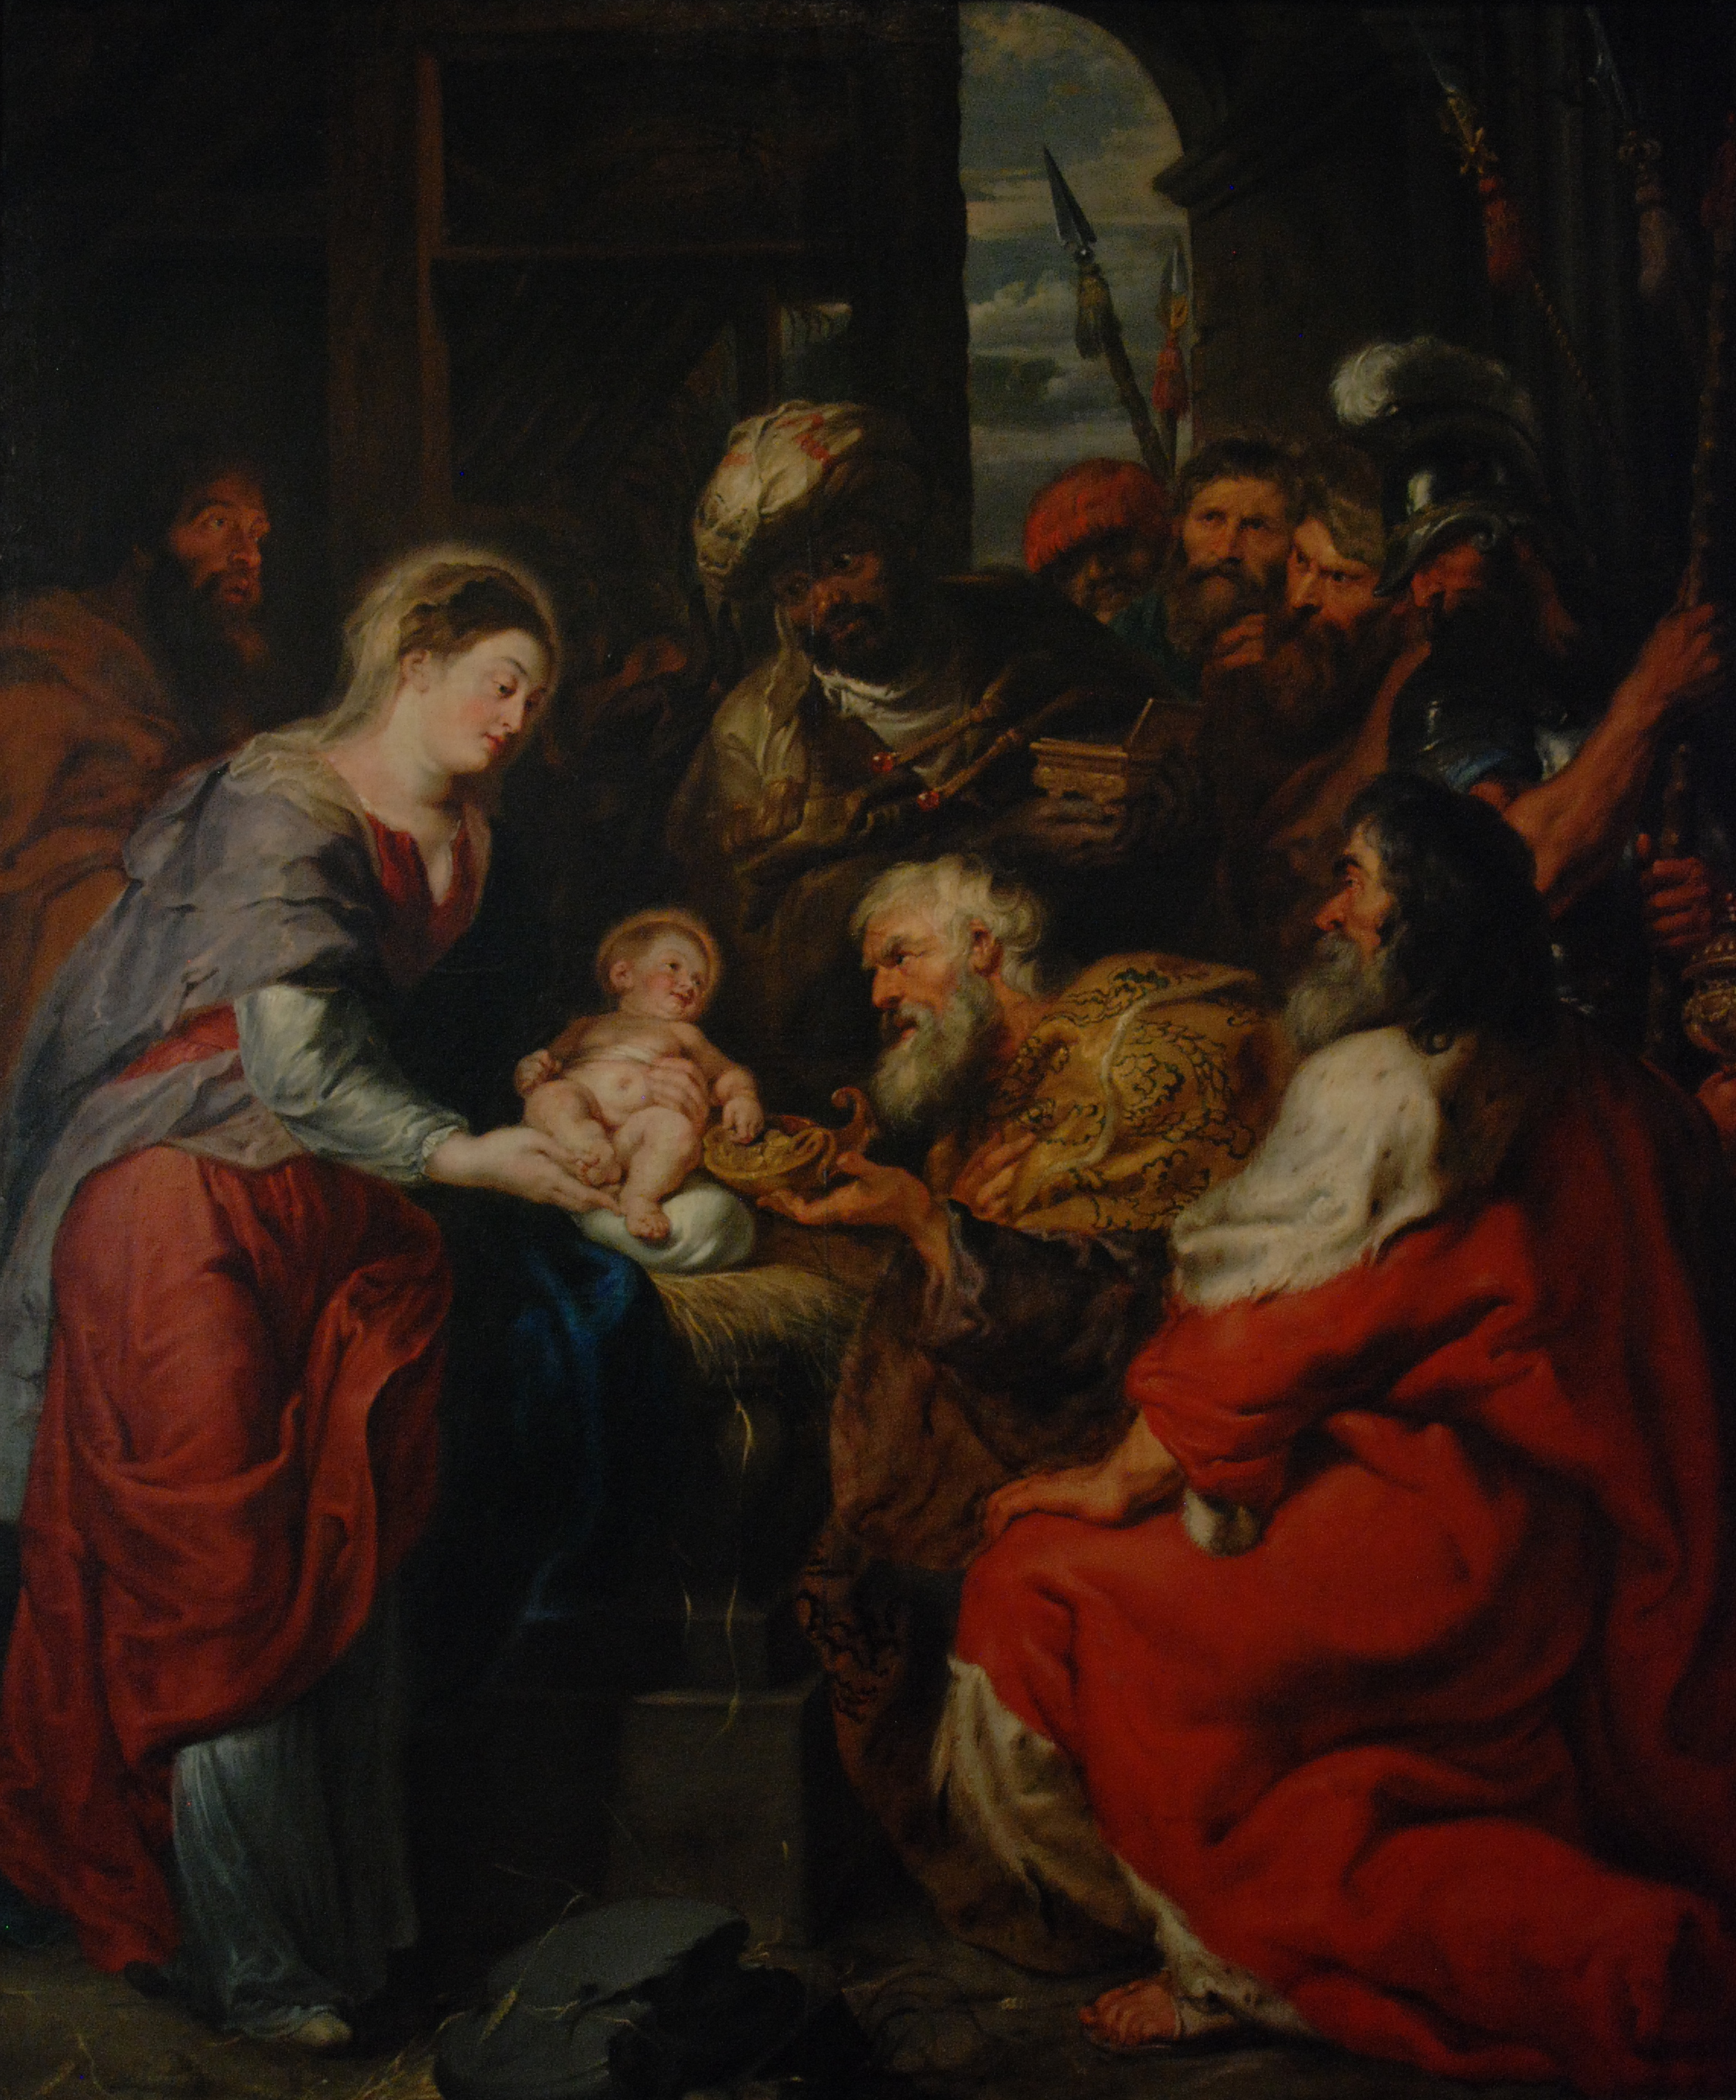 Peter Paul Rubens, Adoration of the Magi, 1626-27